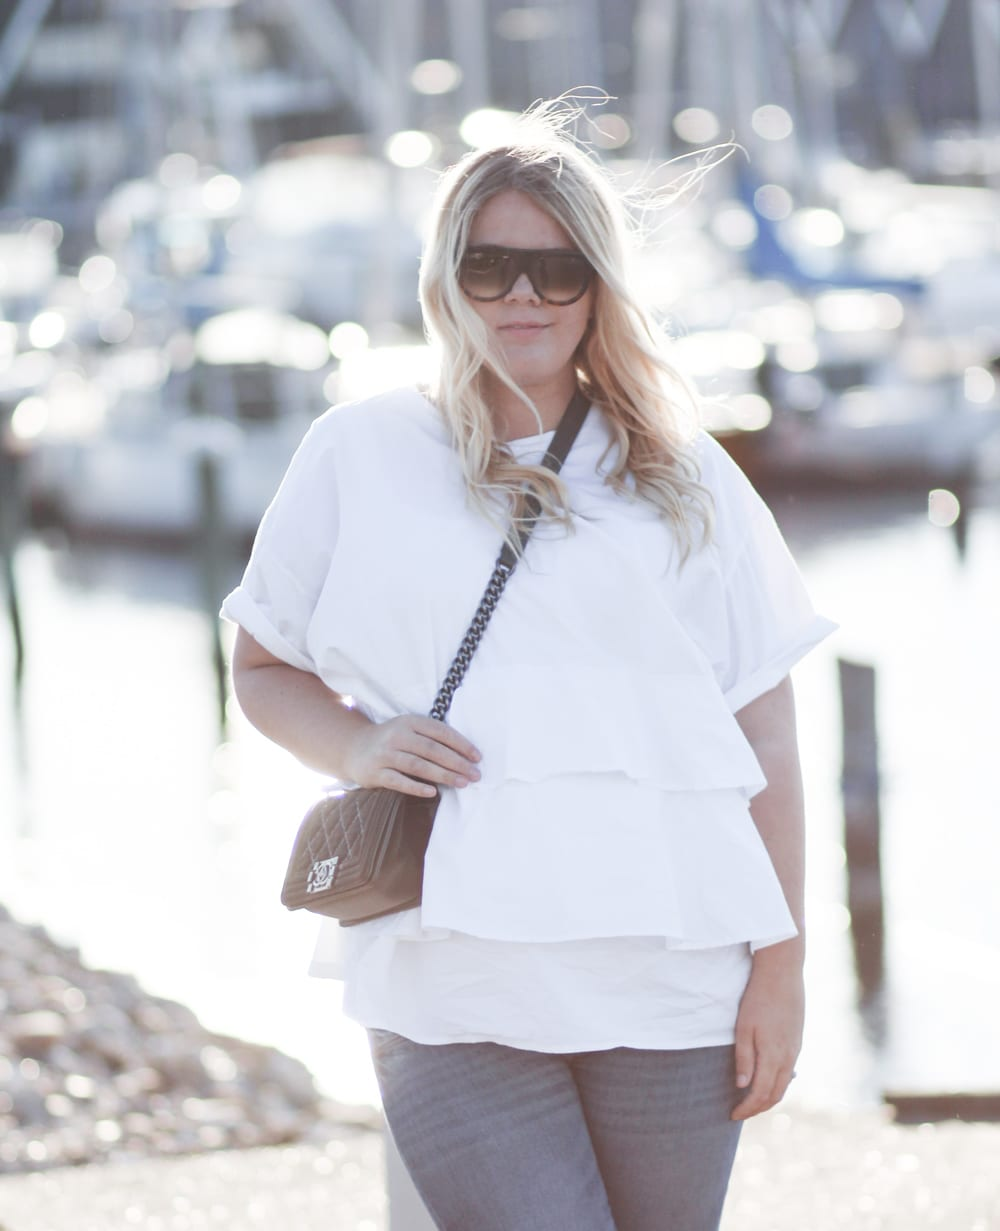 acie-outfit-rungsted-zara-tee-flaeser-celine-23-of-23